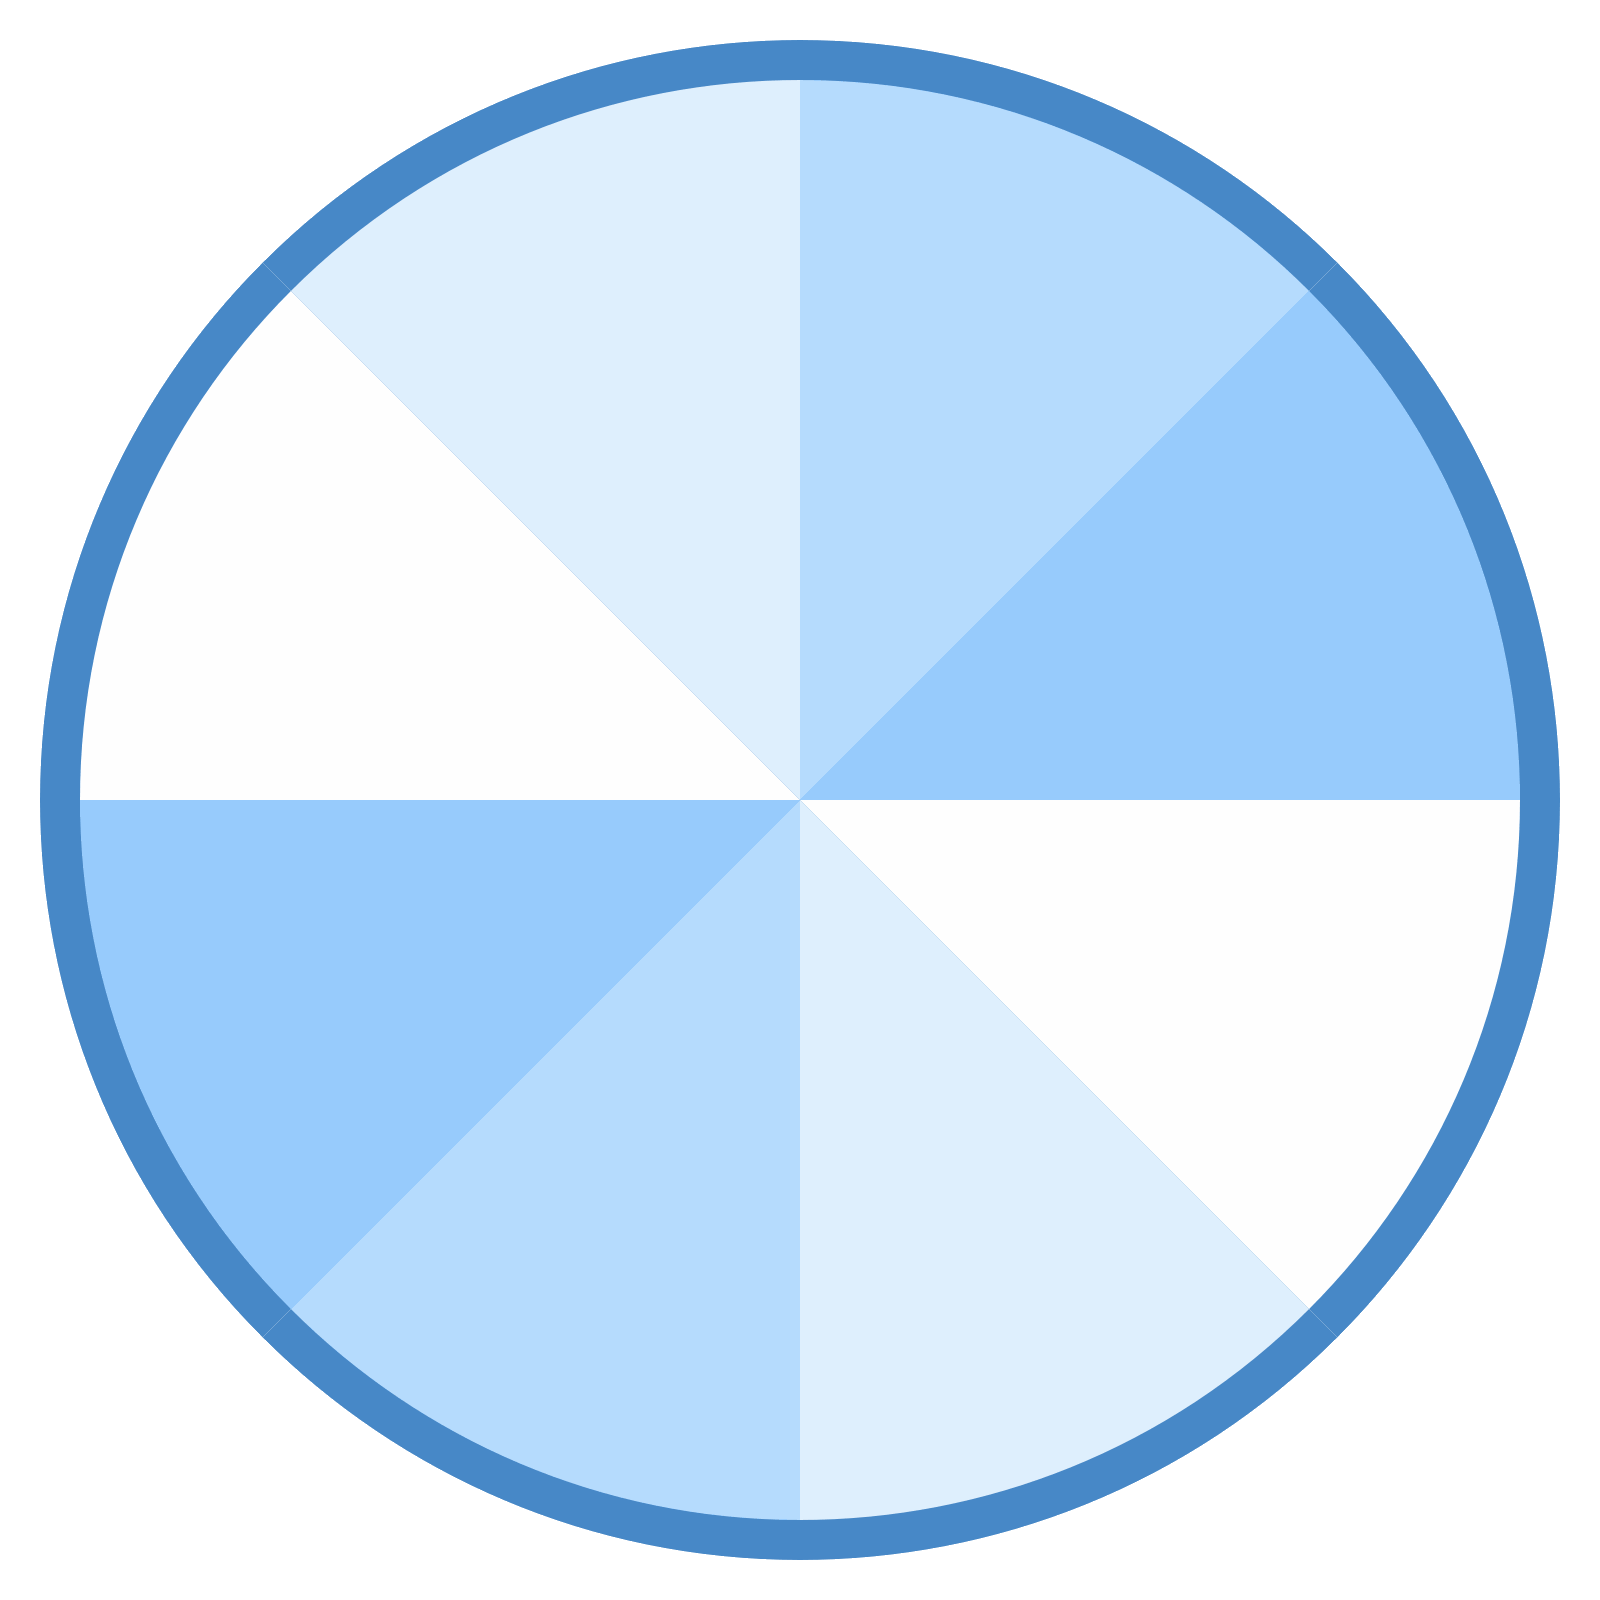 picture transparent download Wheel icon free download. Vector color blue